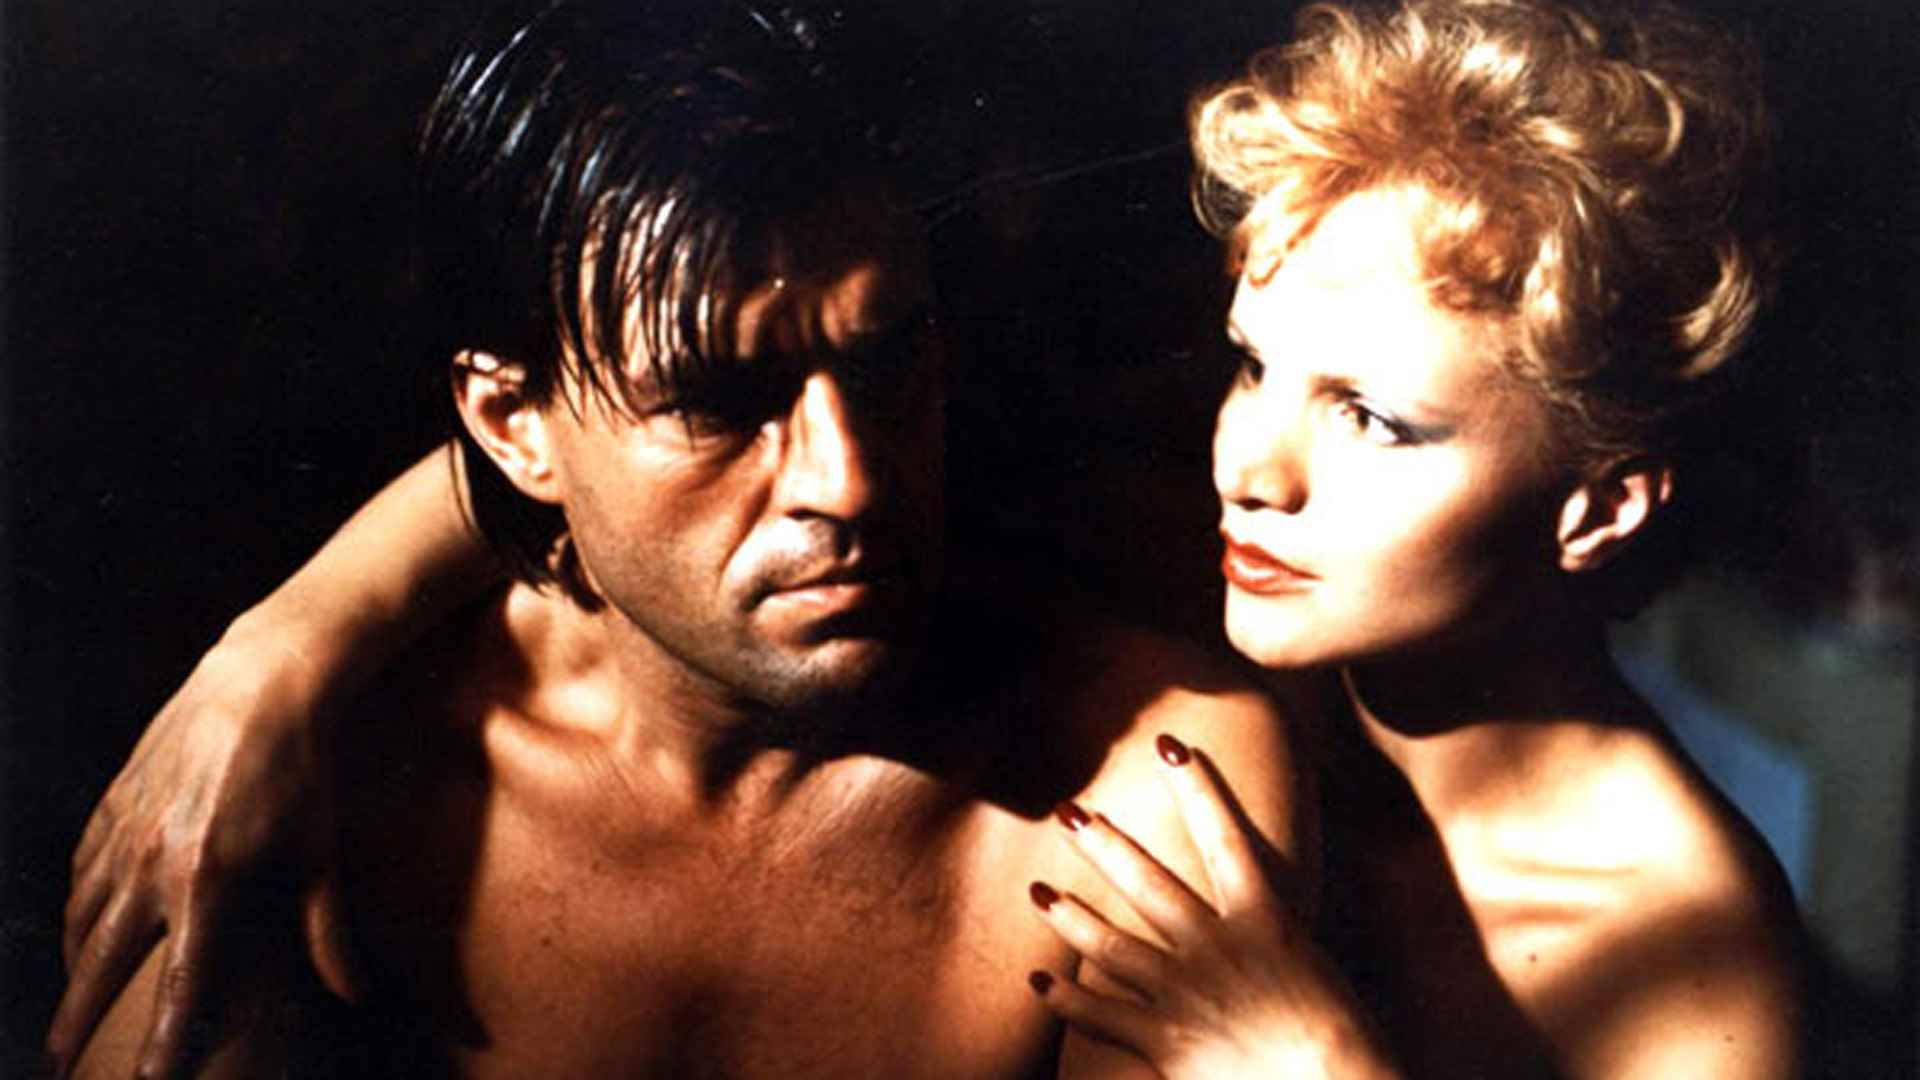 Gay writer Jeroen Krabbe in the arms of femme fatale Renee Soutendijk in The Fourth Man (1983)